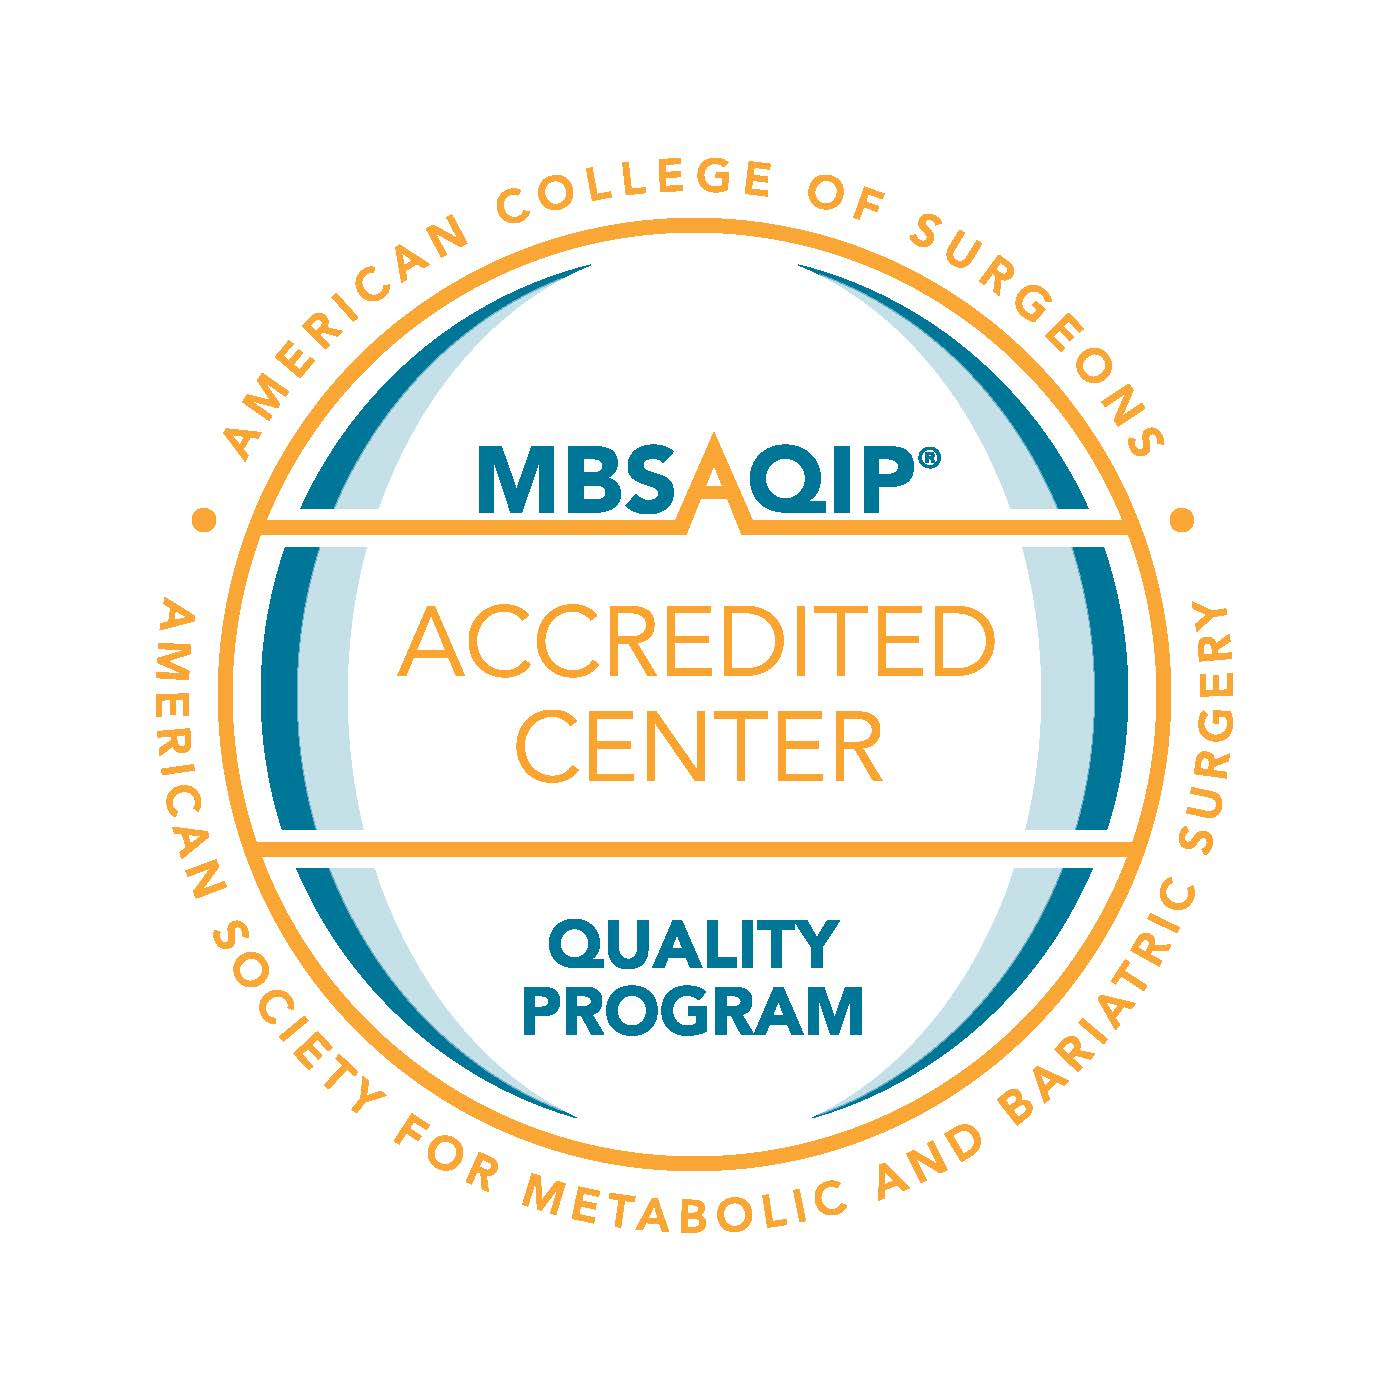 Fort Sanders Regional Medical Center Achieves National Accreditation as a Comprehensive Center for Bariatric Surgery